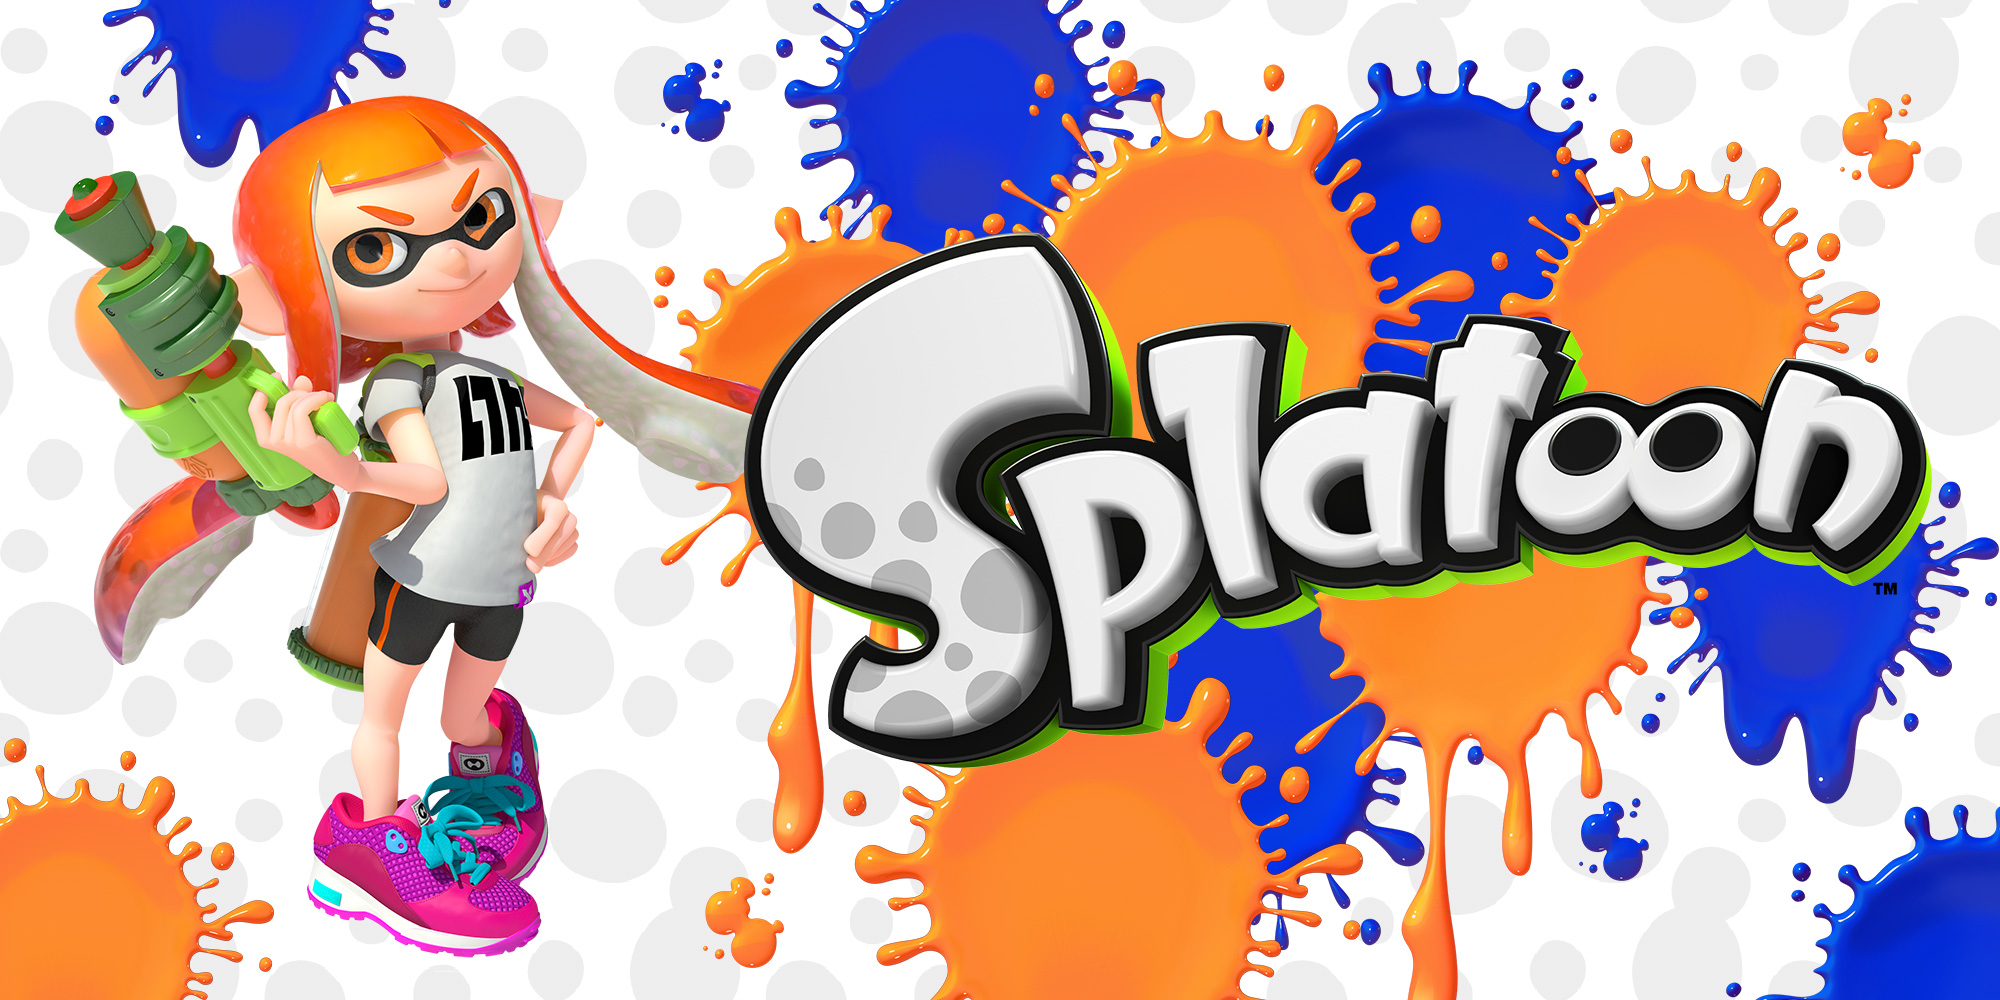 Europe's best Splatoon players set to battle it out at the ESL Go4Splatoon Europe Grand Final on 1st April